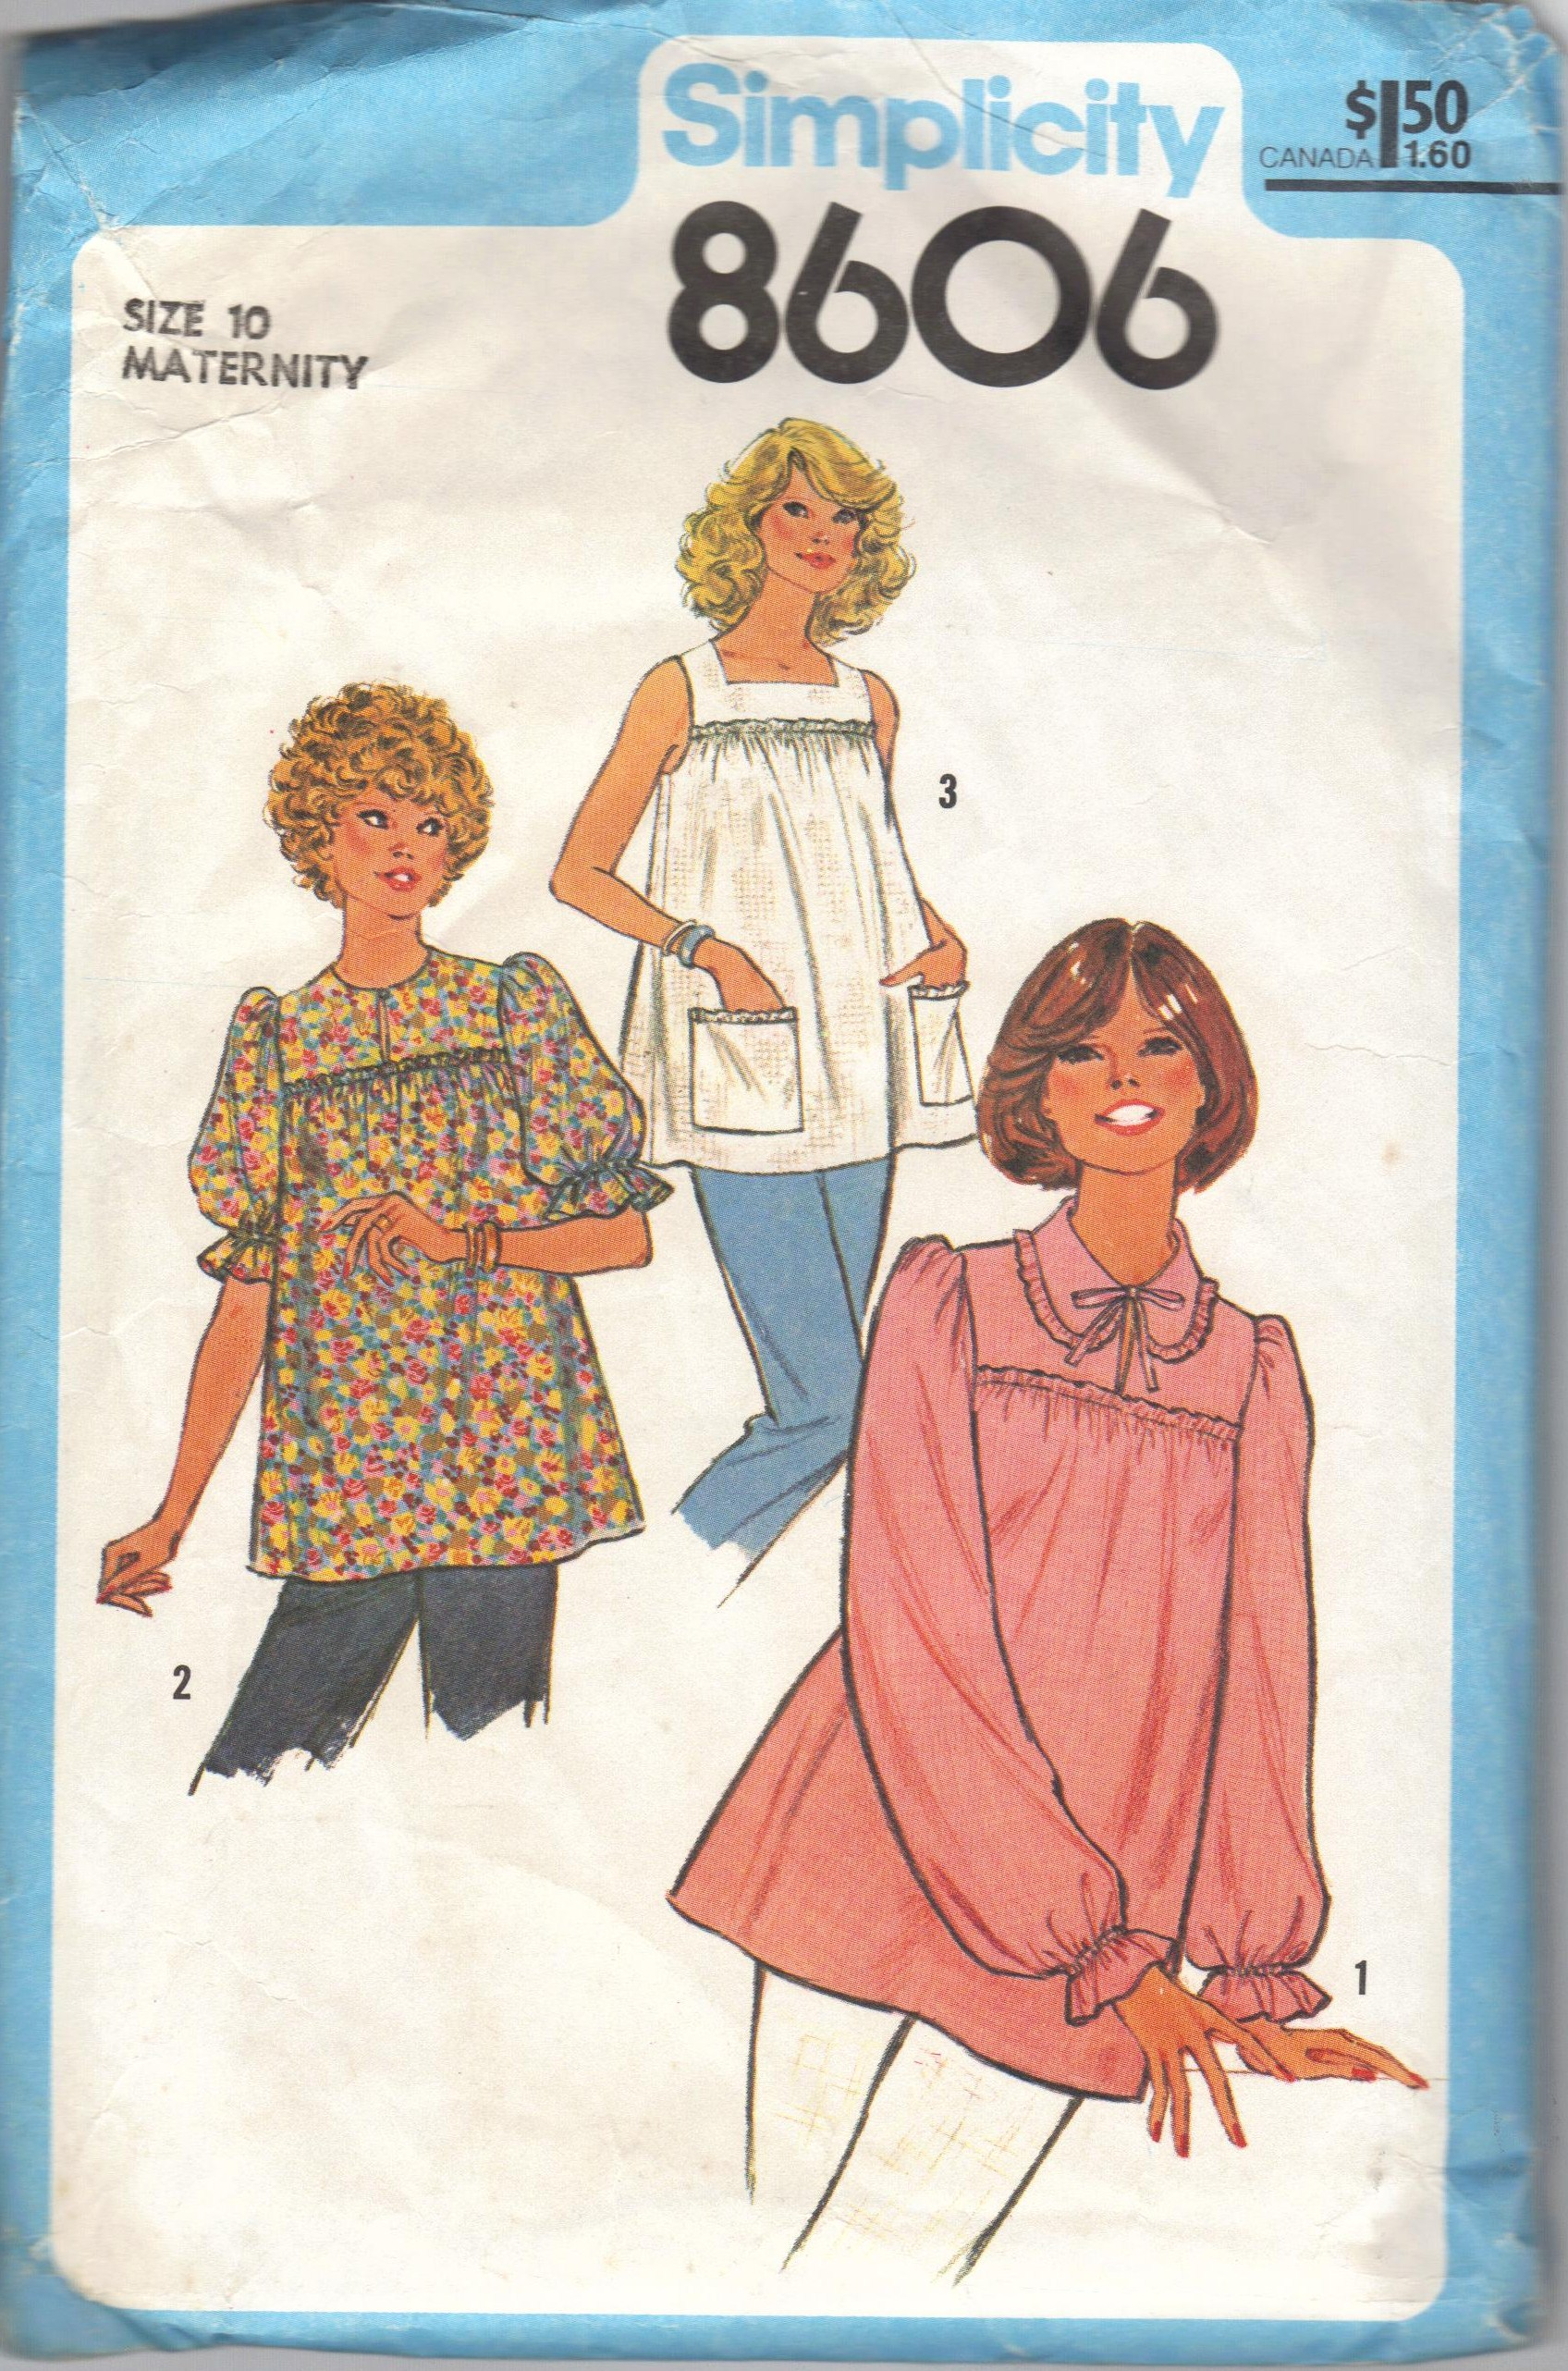 Simplicity 8606 Vintage Sewing Patterns